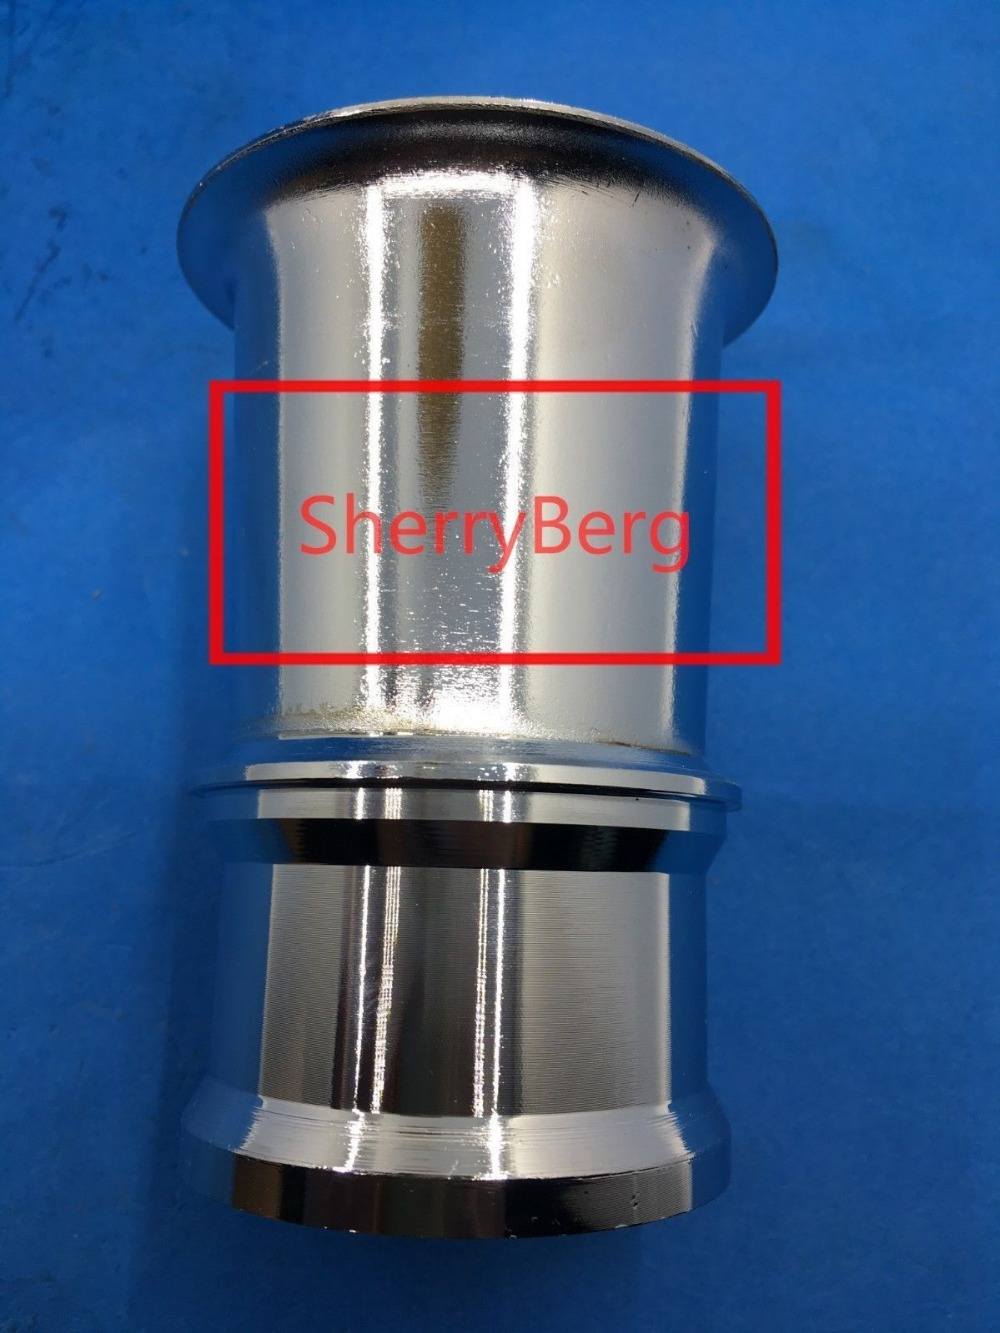 SherryBerg air horn fit for WEBER 48 DCO carburettor Carb carburetor Velocity Stacks Trumpets Ram Tubes Dellorto Solex sold pair